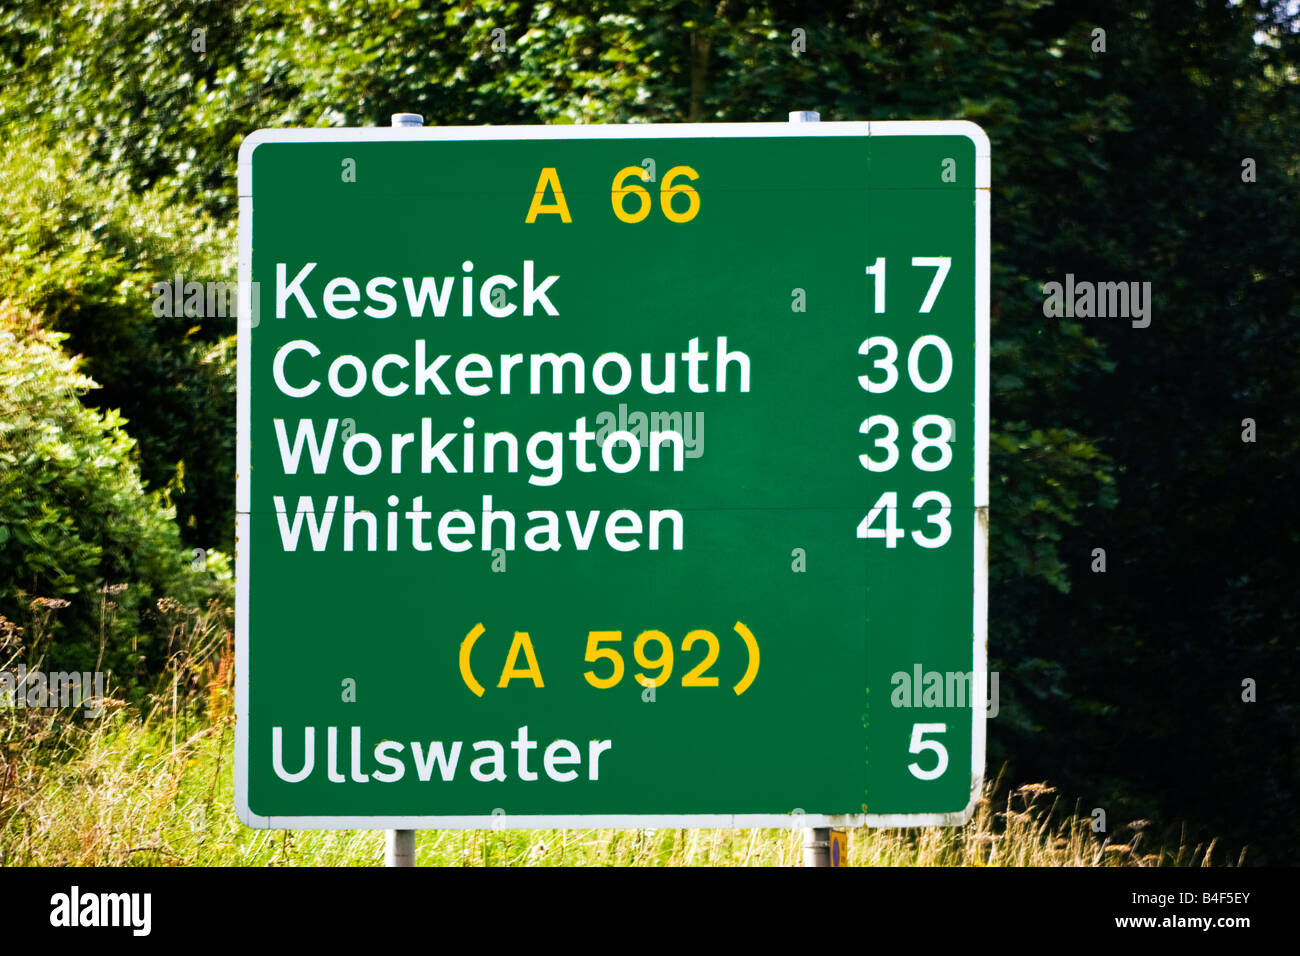 Green UK 'A' road sign on the A66 route with distance information, England, UK - Stock Image